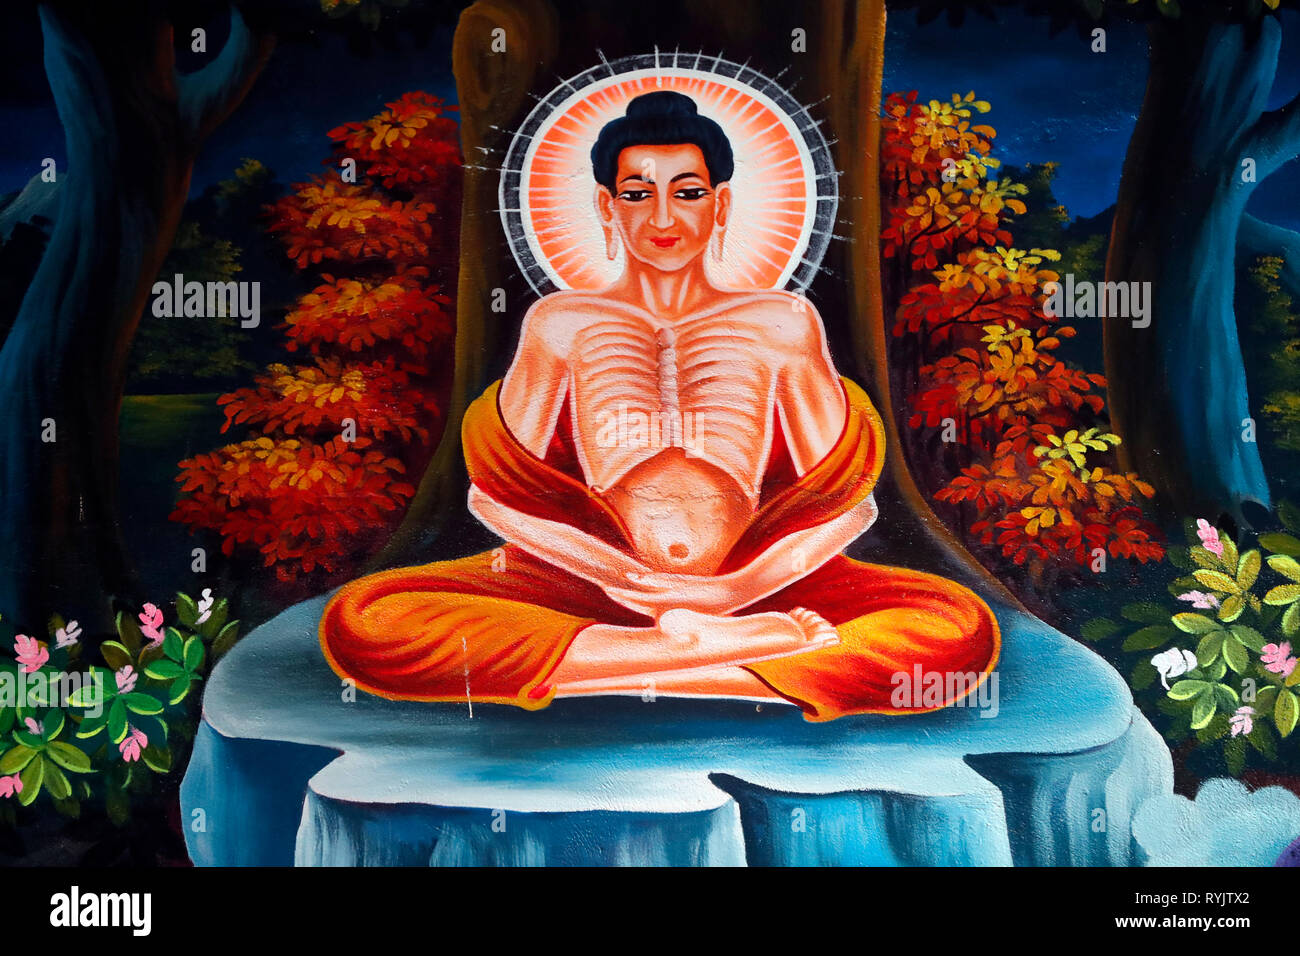 The Life of the Buddha, Siddhartha Gautama.  The ascetic Bodhisattva spent six years practising austerity and meditation with steadfastness as well as - Stock Image